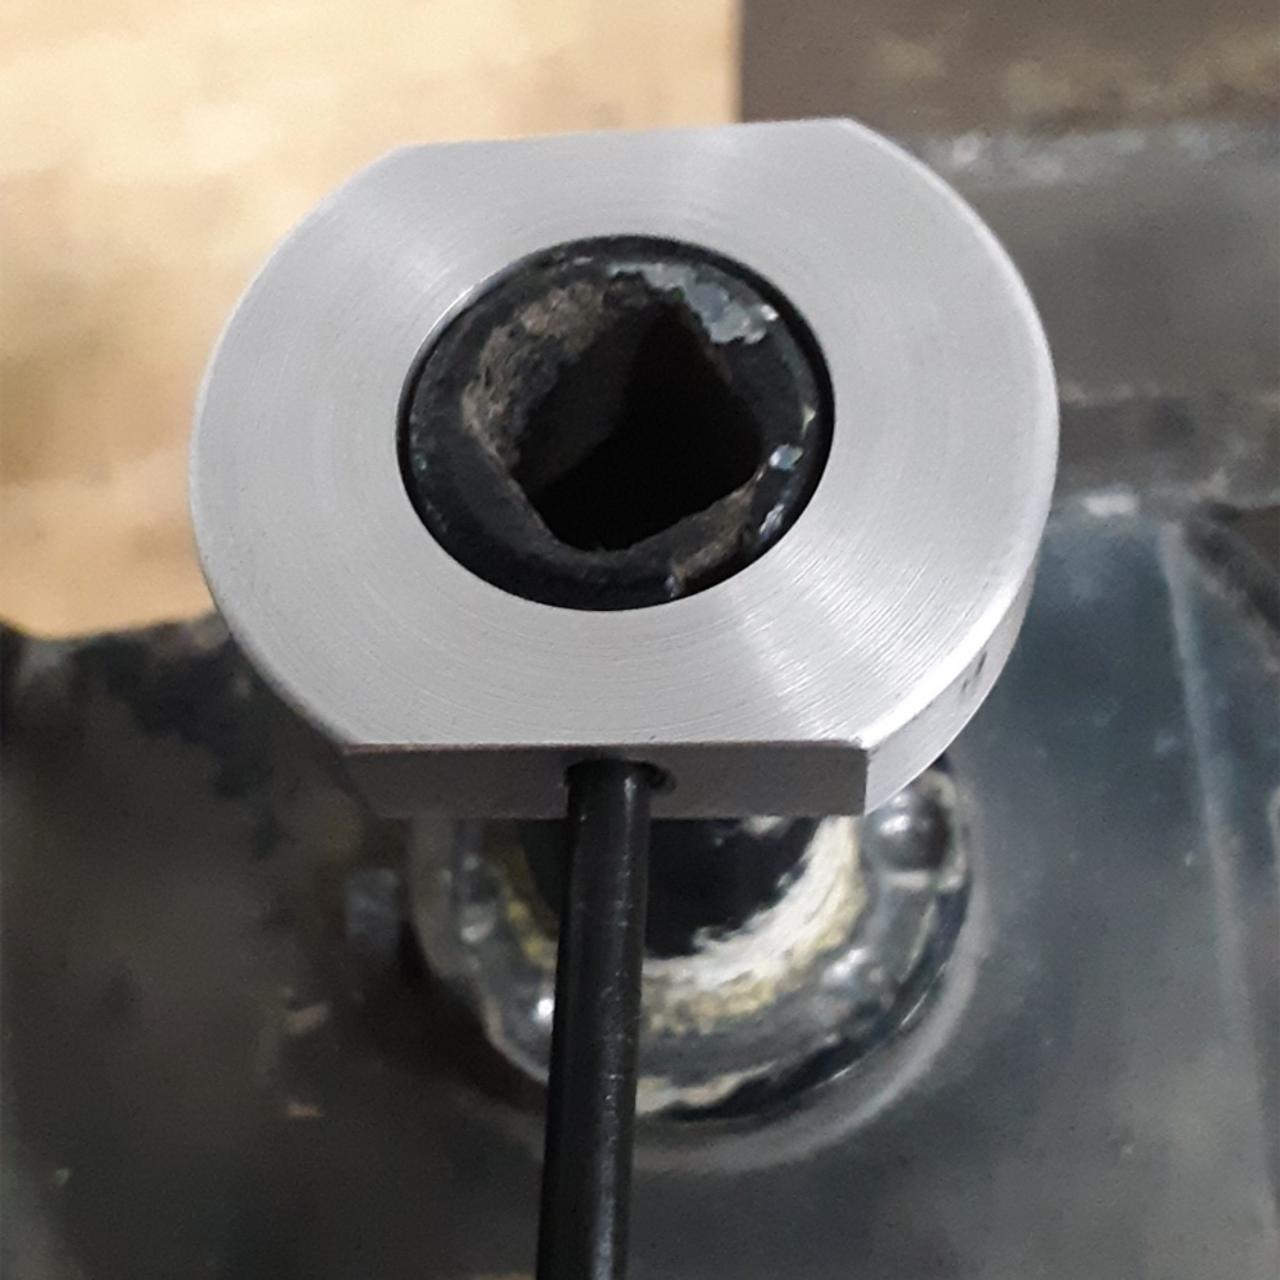 80 Series Floppy Mirror Fix (FMF-1)- Transfer punch for the first hole